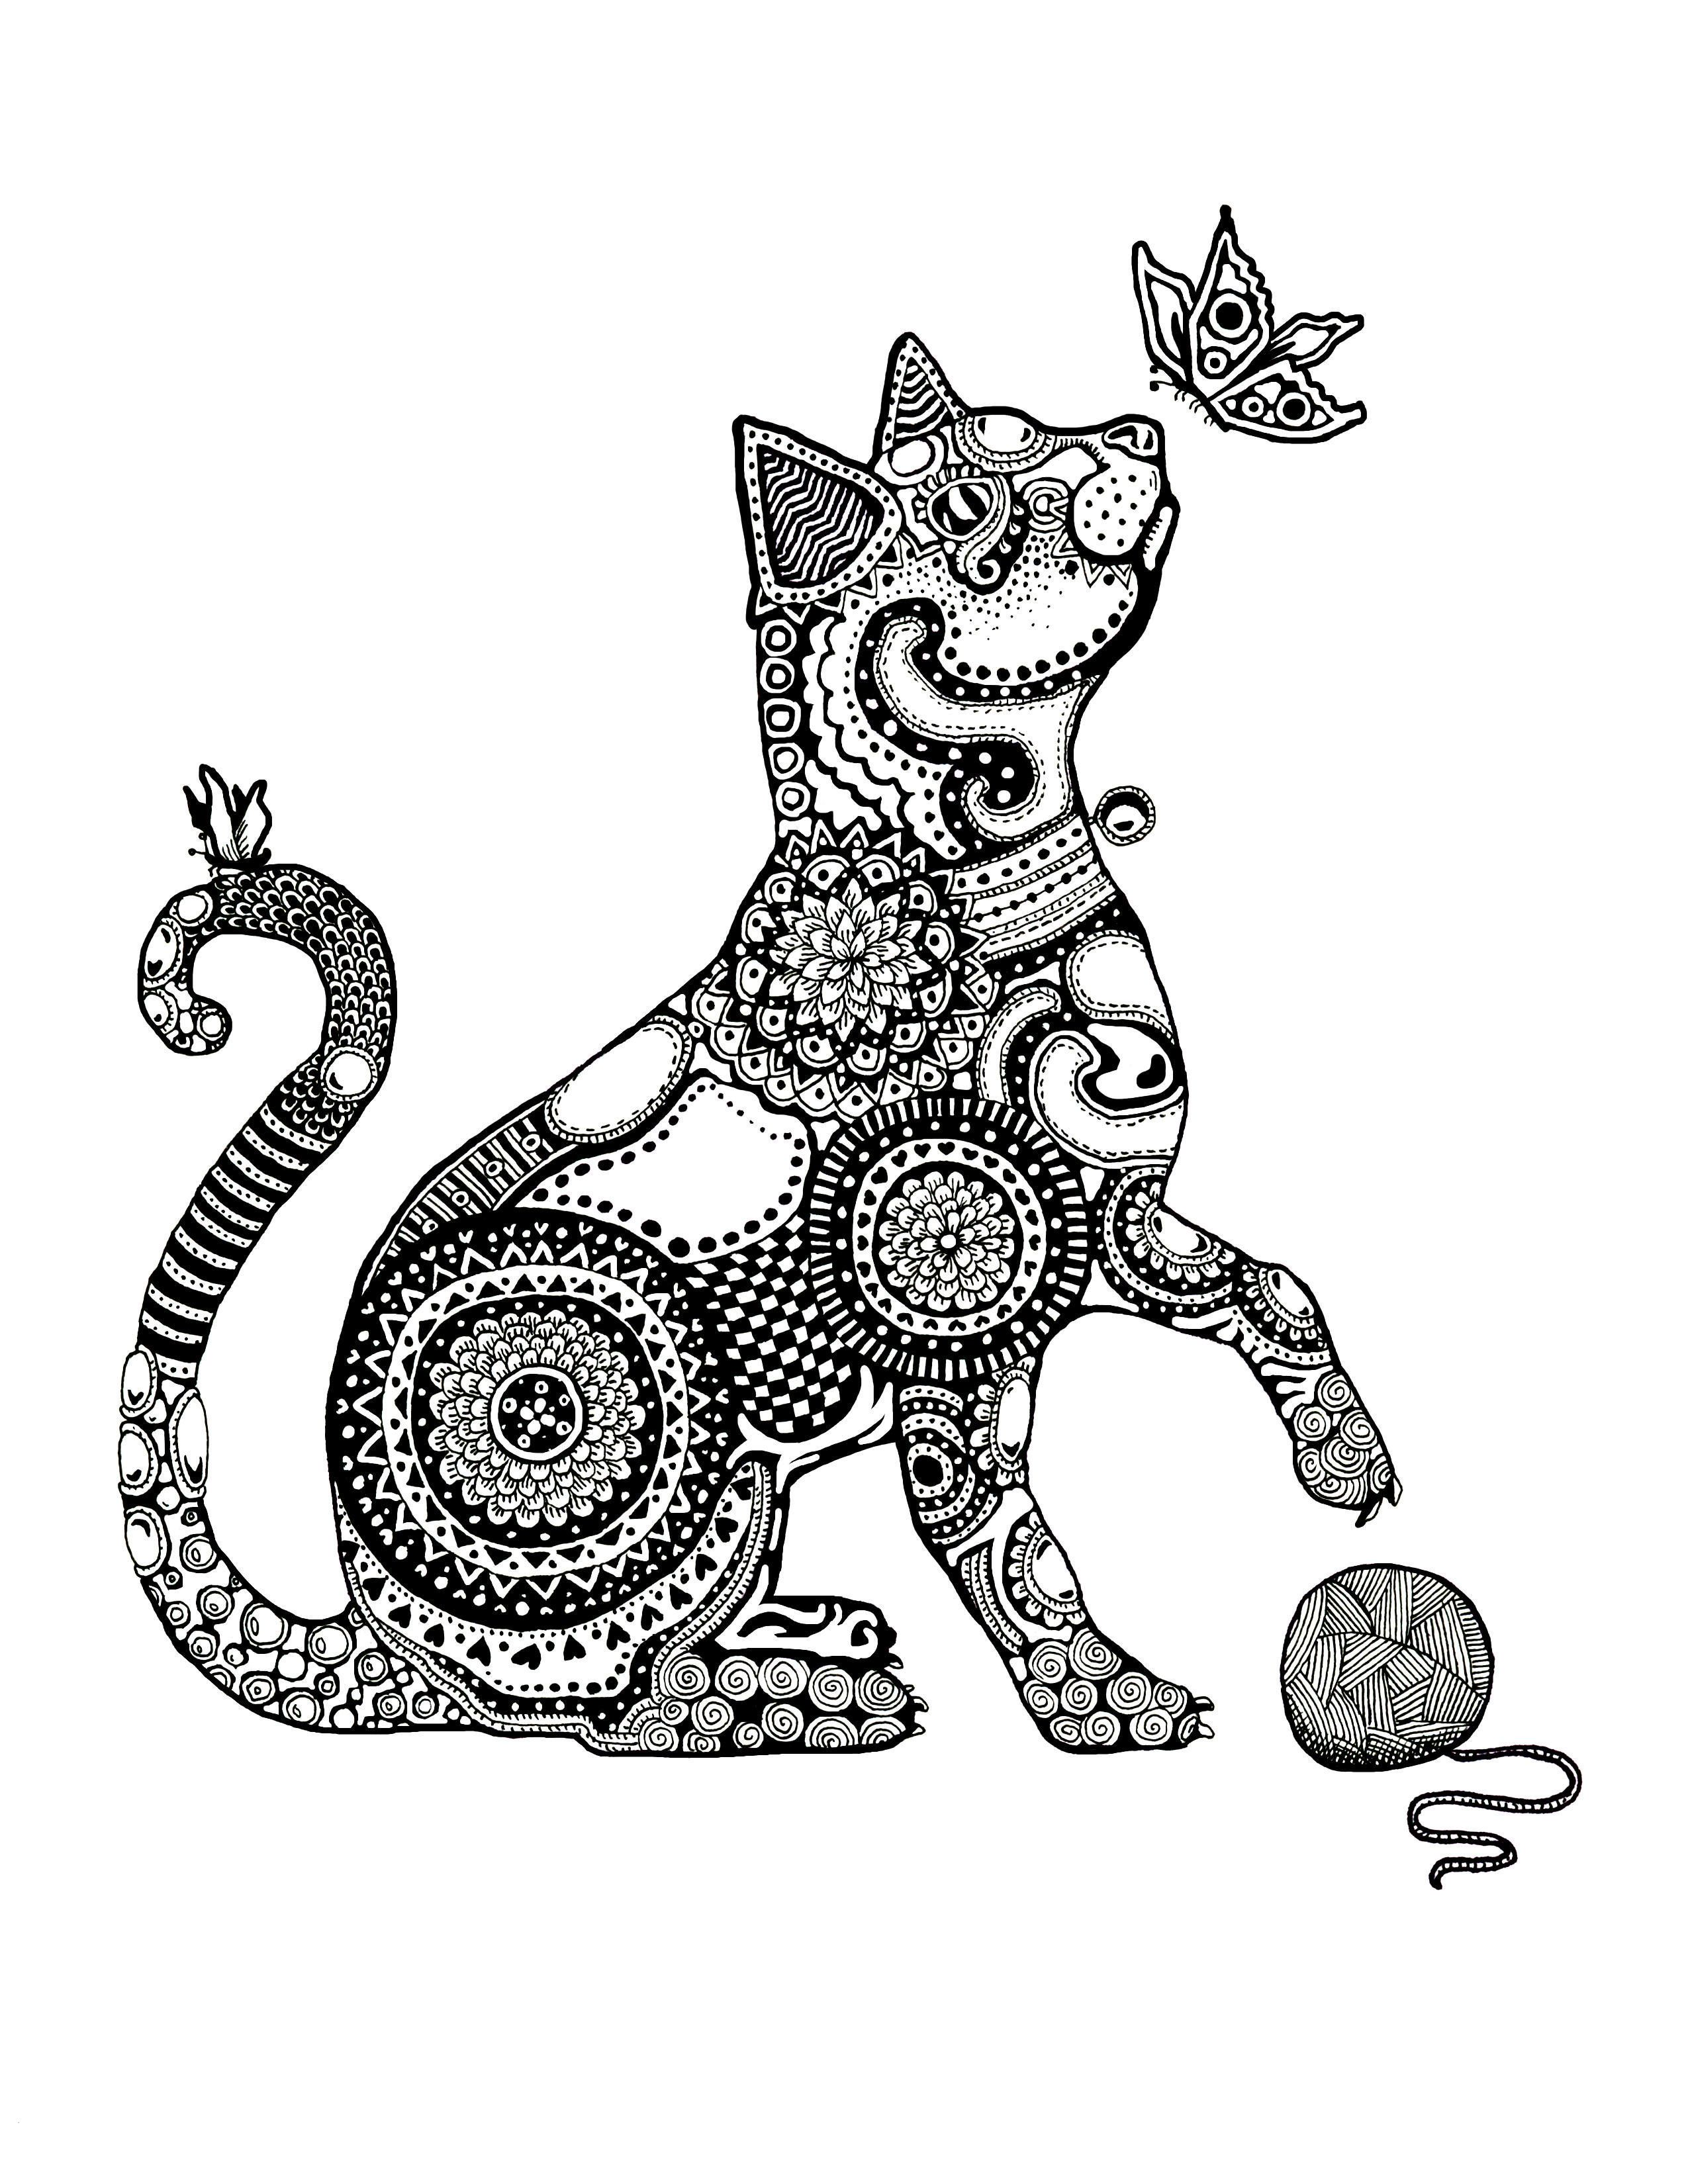 Cat With Butterfly Zentangle Traditional Ink On Bristol Janelle Dimmett 2016 Www Jan Mandala Coloring Pages Minimalist Wall Art Printable Mandala Coloring [ 3300 x 2550 Pixel ]